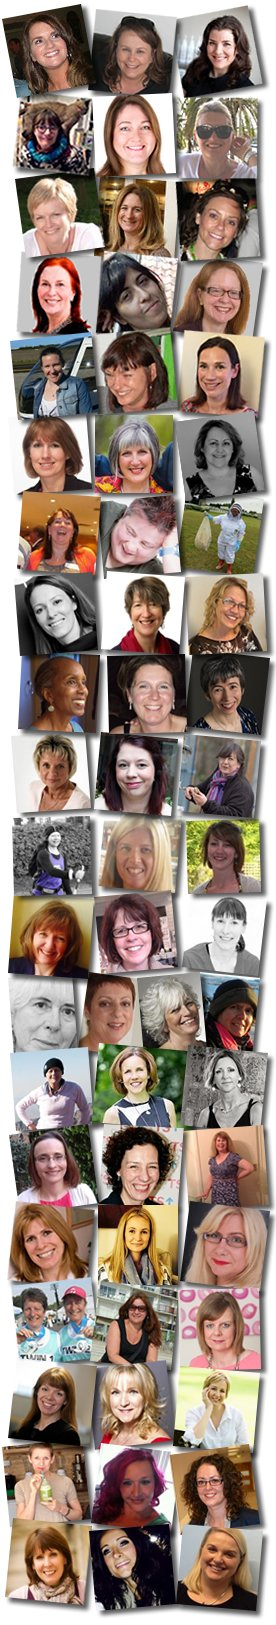 Faces of Henpicked authors